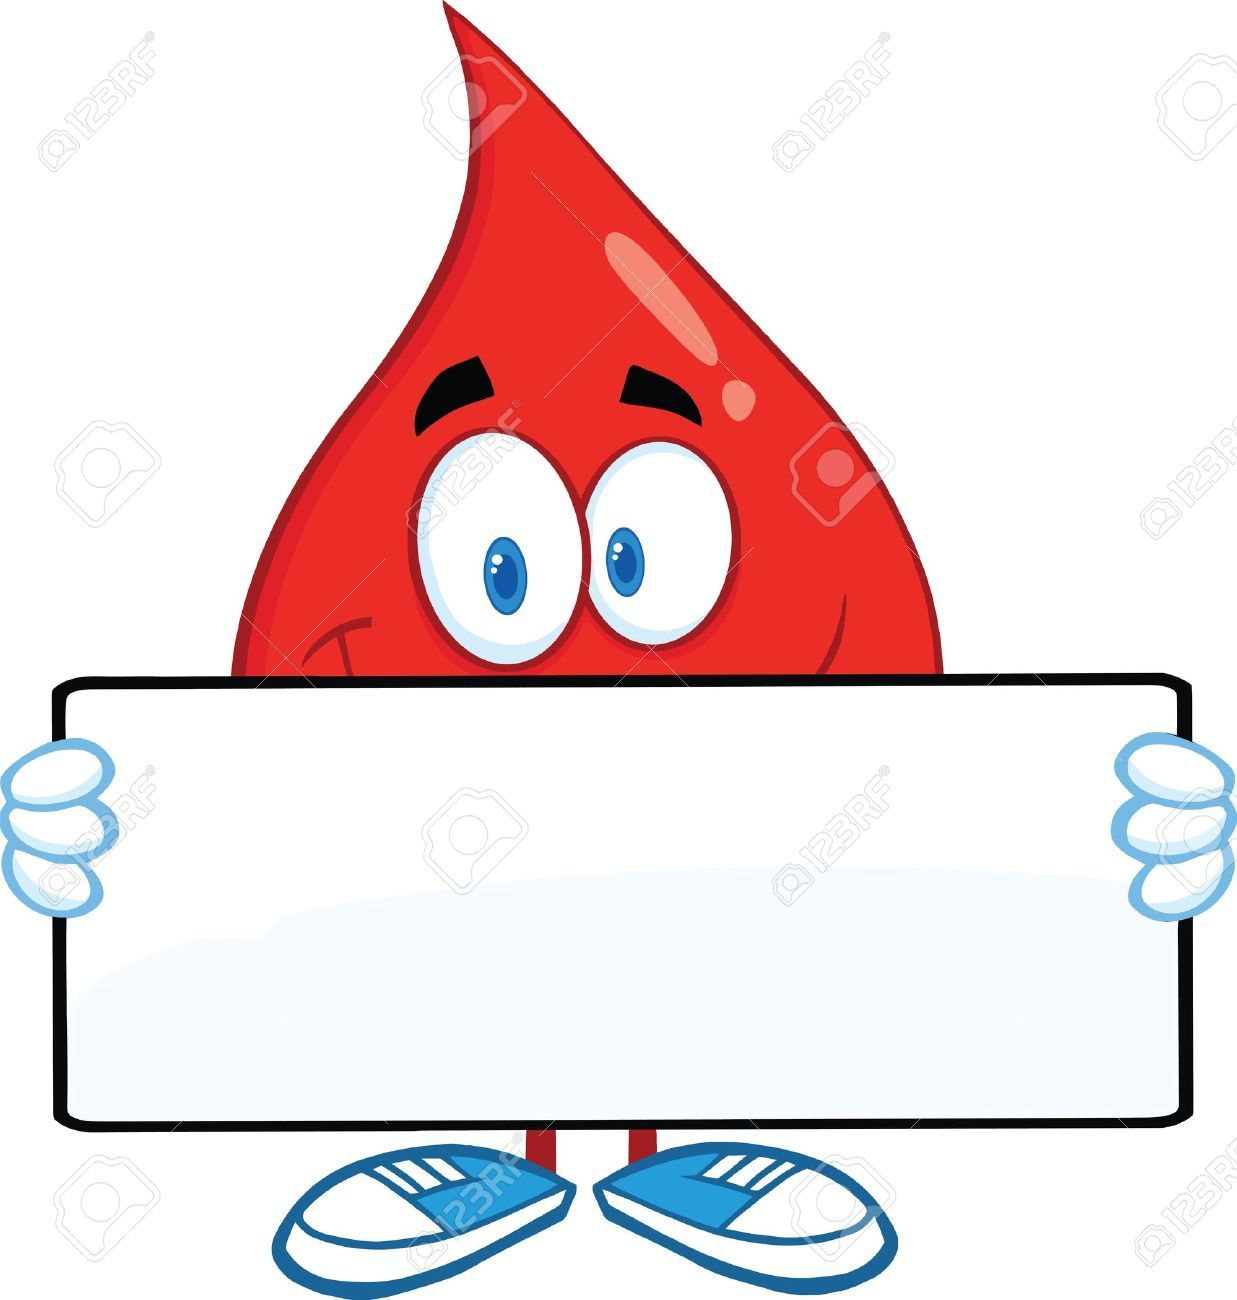 to use as a main graphic this image could be effective to draw a blood donation google keresés